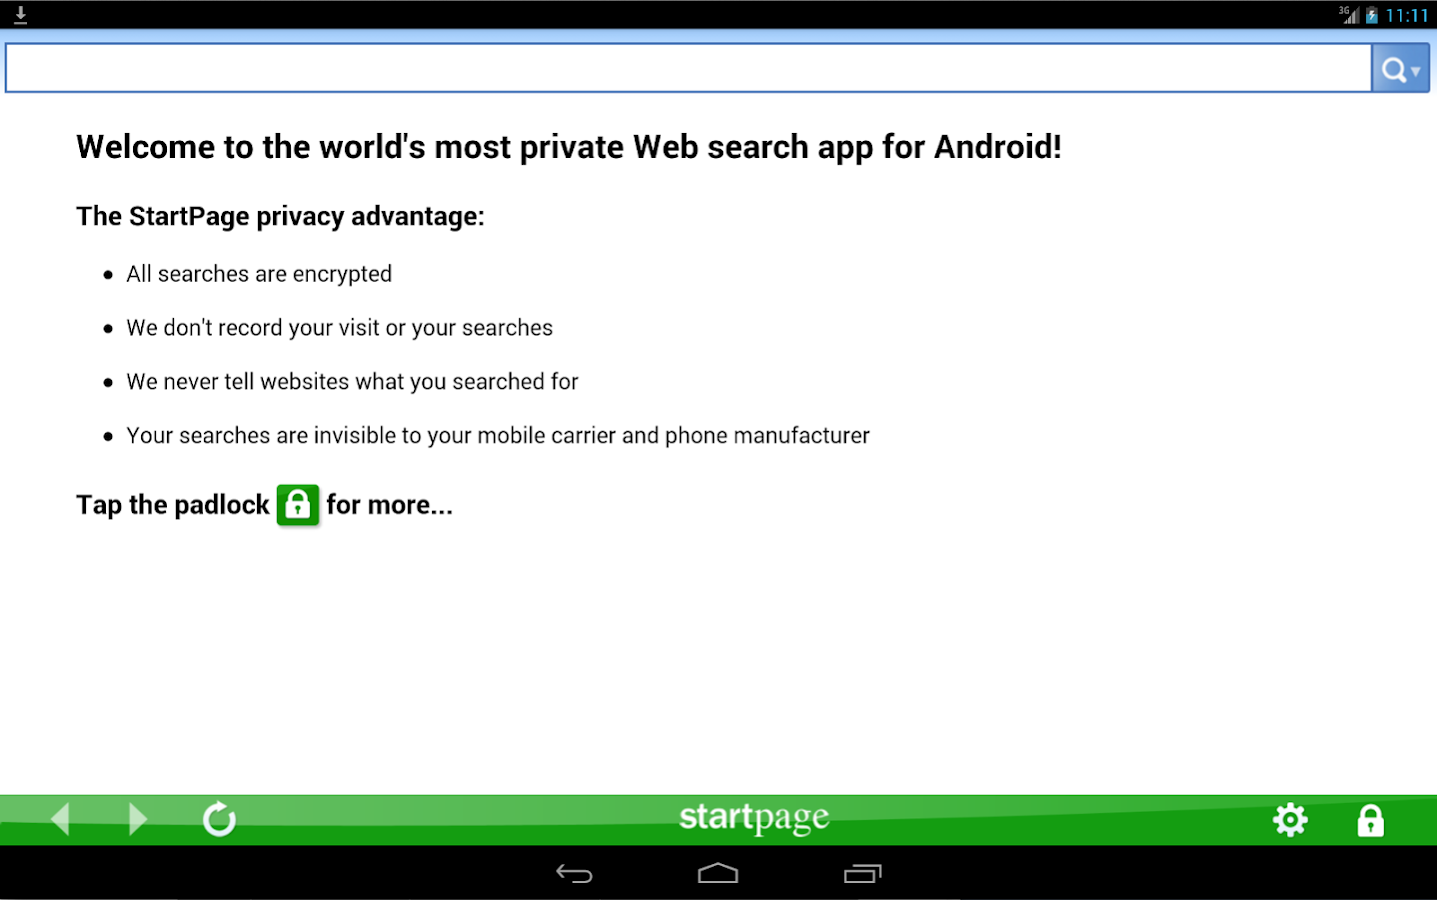 StartPage Private Search - Android Apps on Google Play